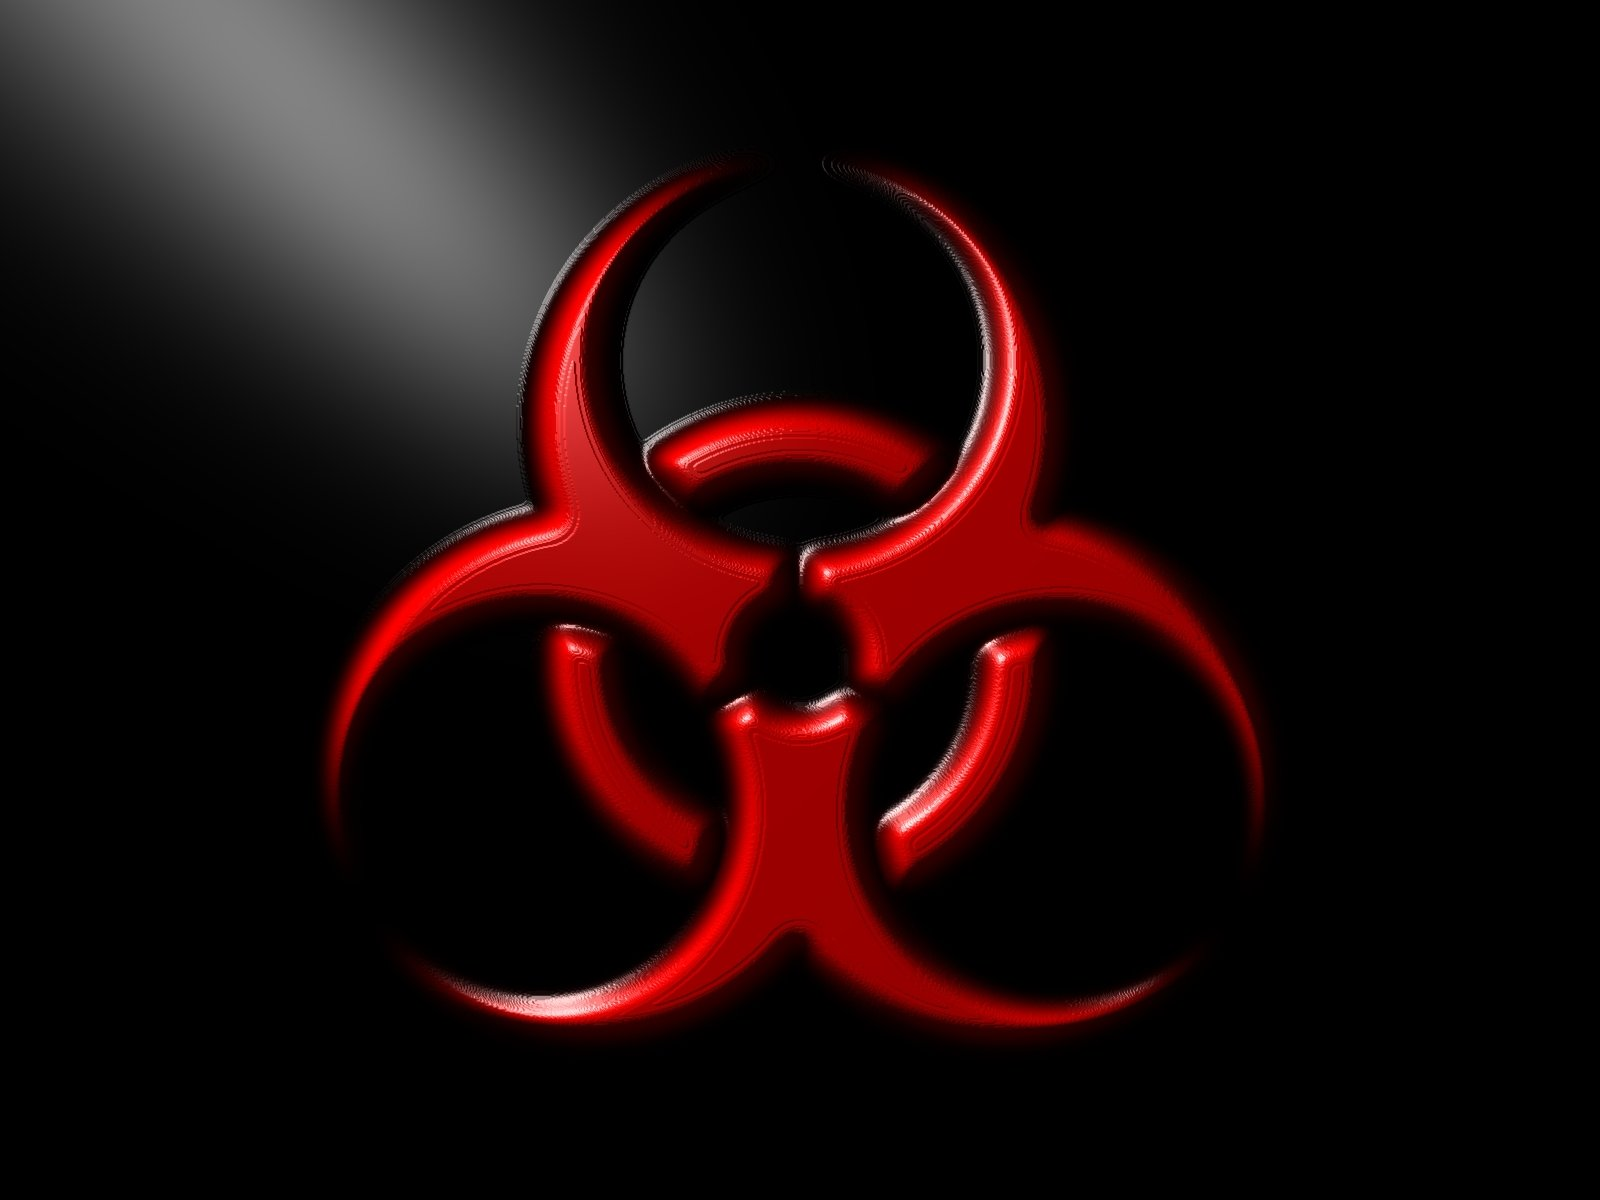 Images For Red Biohazard Sign 1600x1200